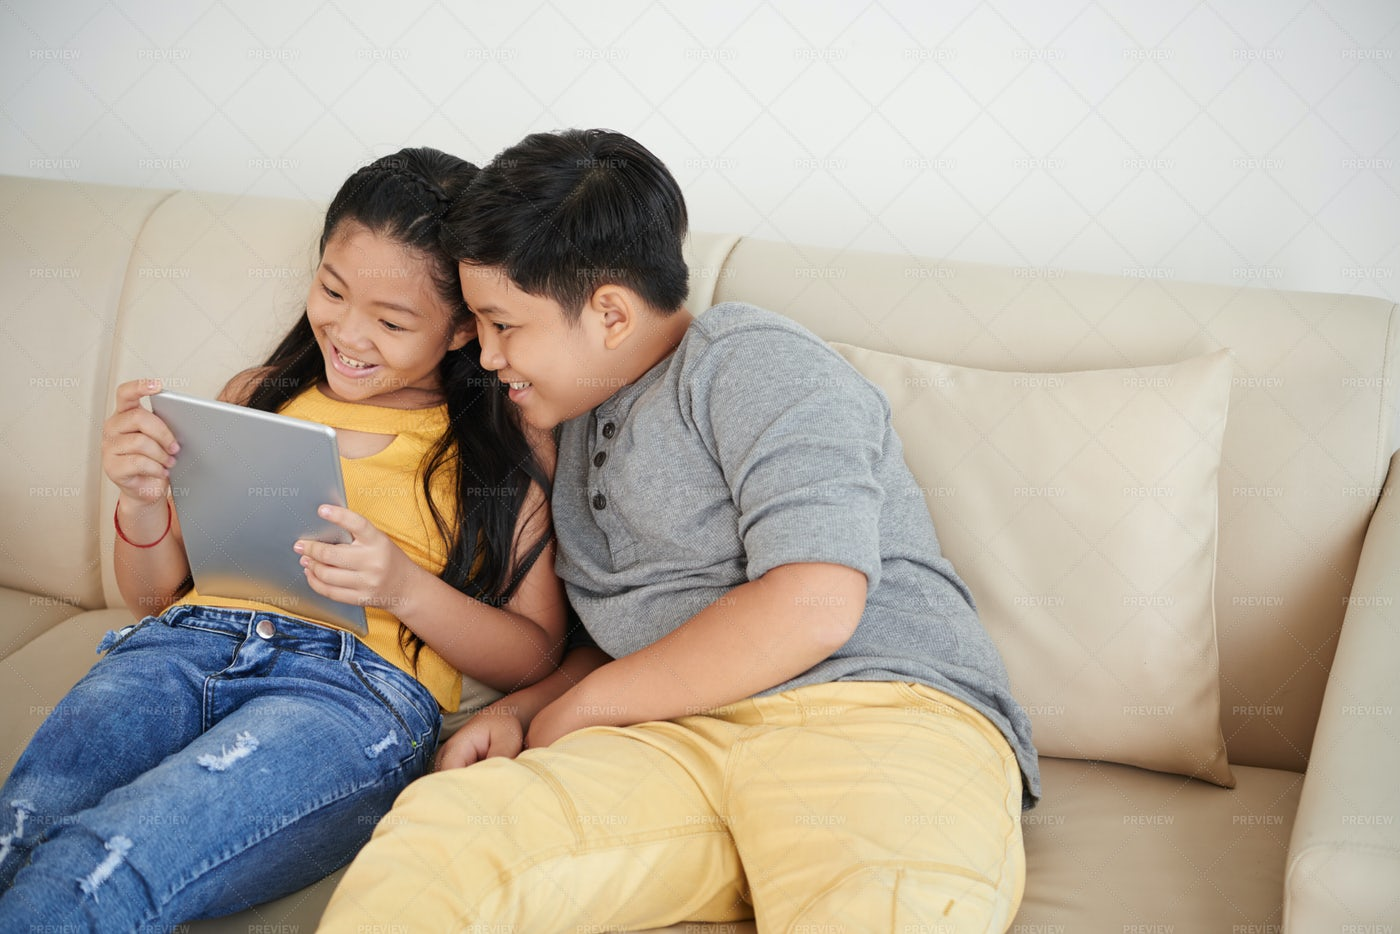 Watching Movie Together: Stock Photos